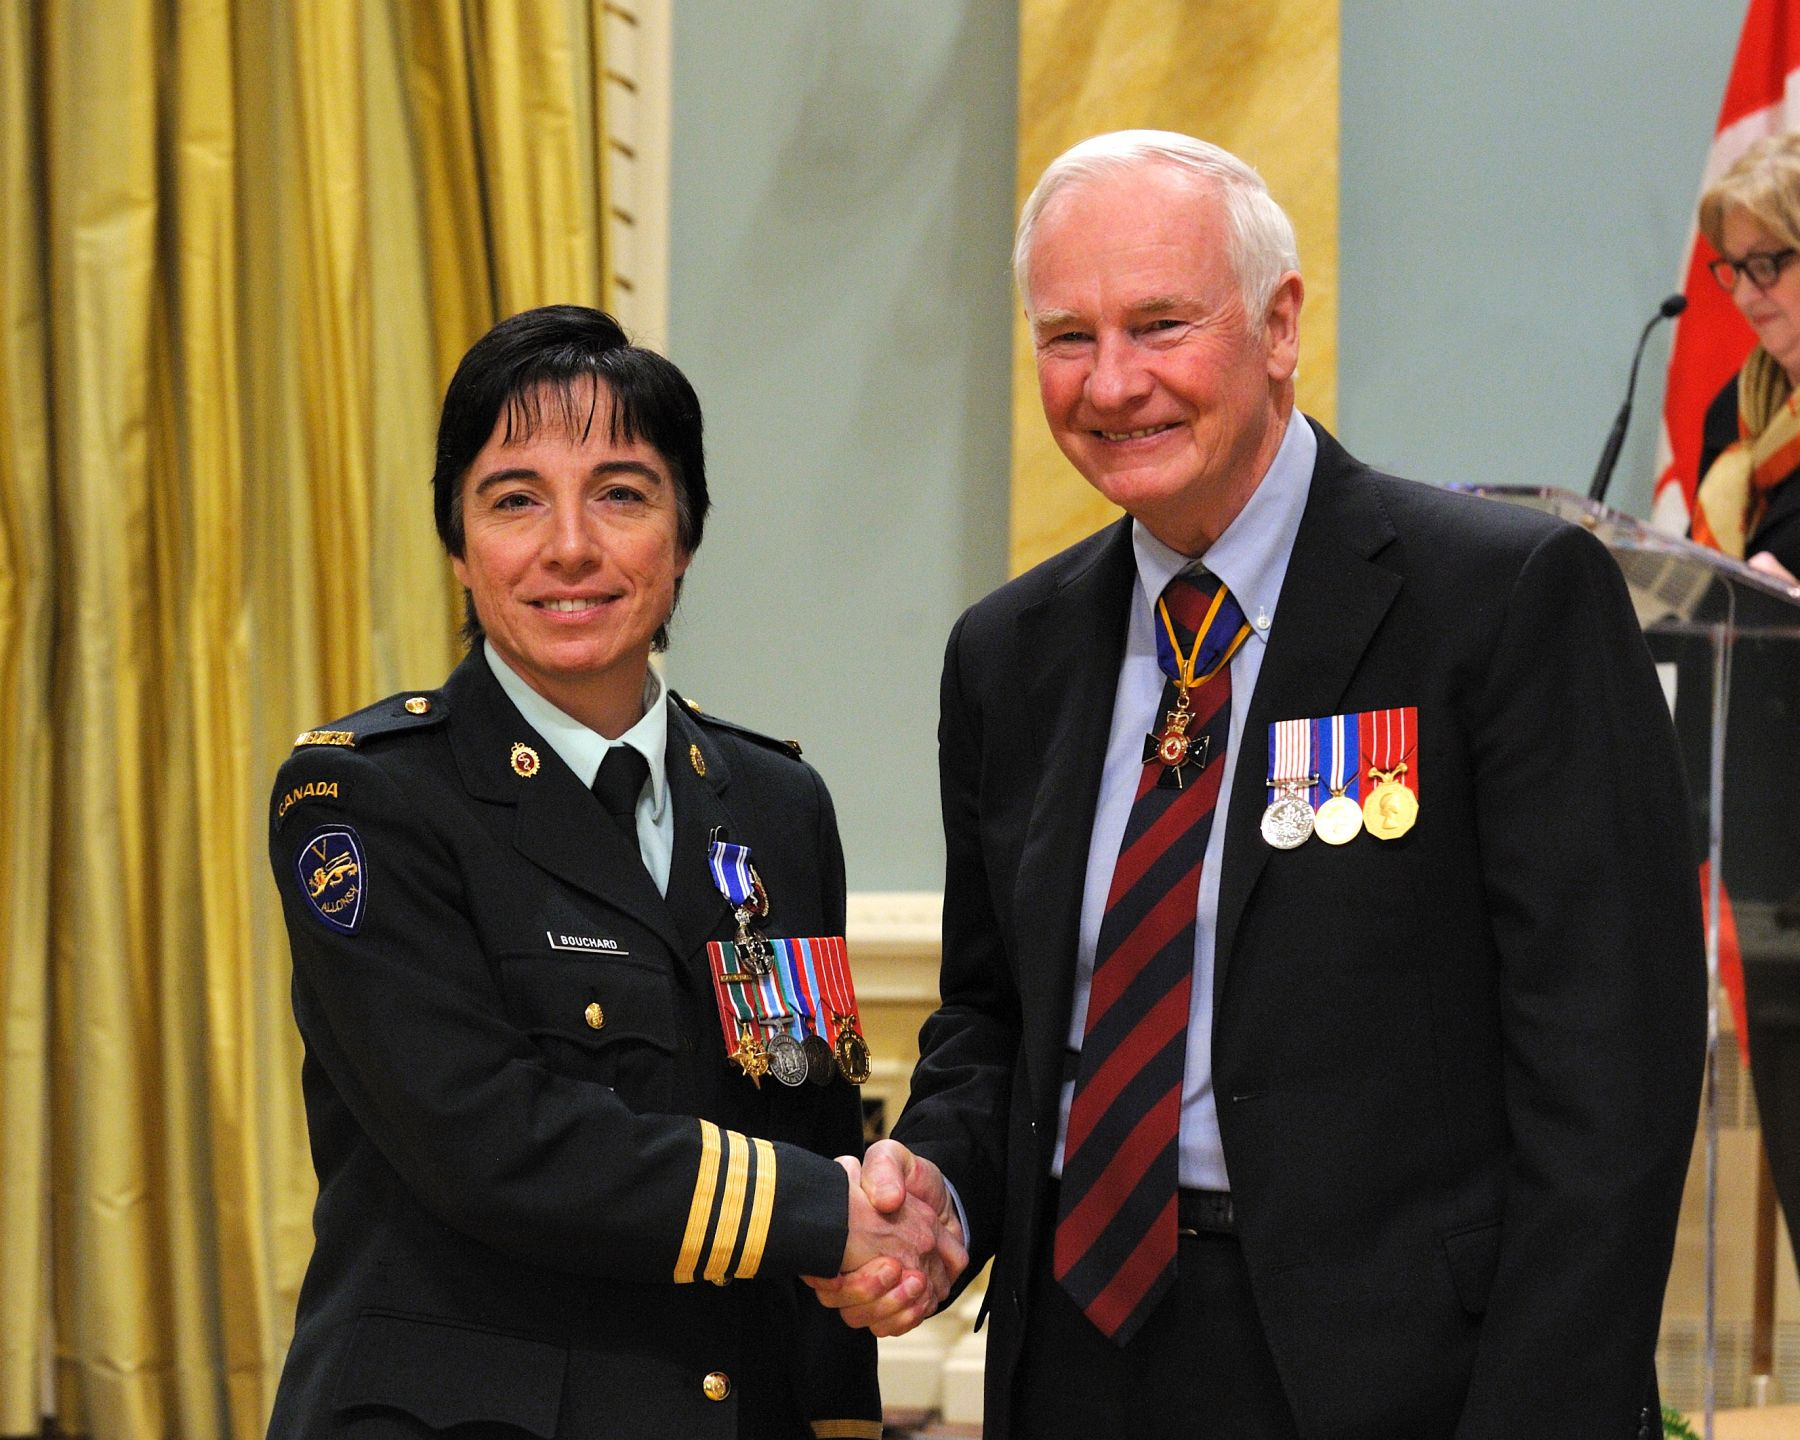 Major Annie Bouchard, M.S.M., C.D., received the Meritorious Service Medal (Military Division) from His Excellency. Following the catastrophic earthquake that struck Haiti in 2010, Major Bouchard, as a first responder, commanded a medical platoon from January to February of that year. Despite the physical and mental challenges of administering medical treatment in such a horrifying environment, she provided critical care to countless wounded, while keeping watch over her team's morale and well-being. 